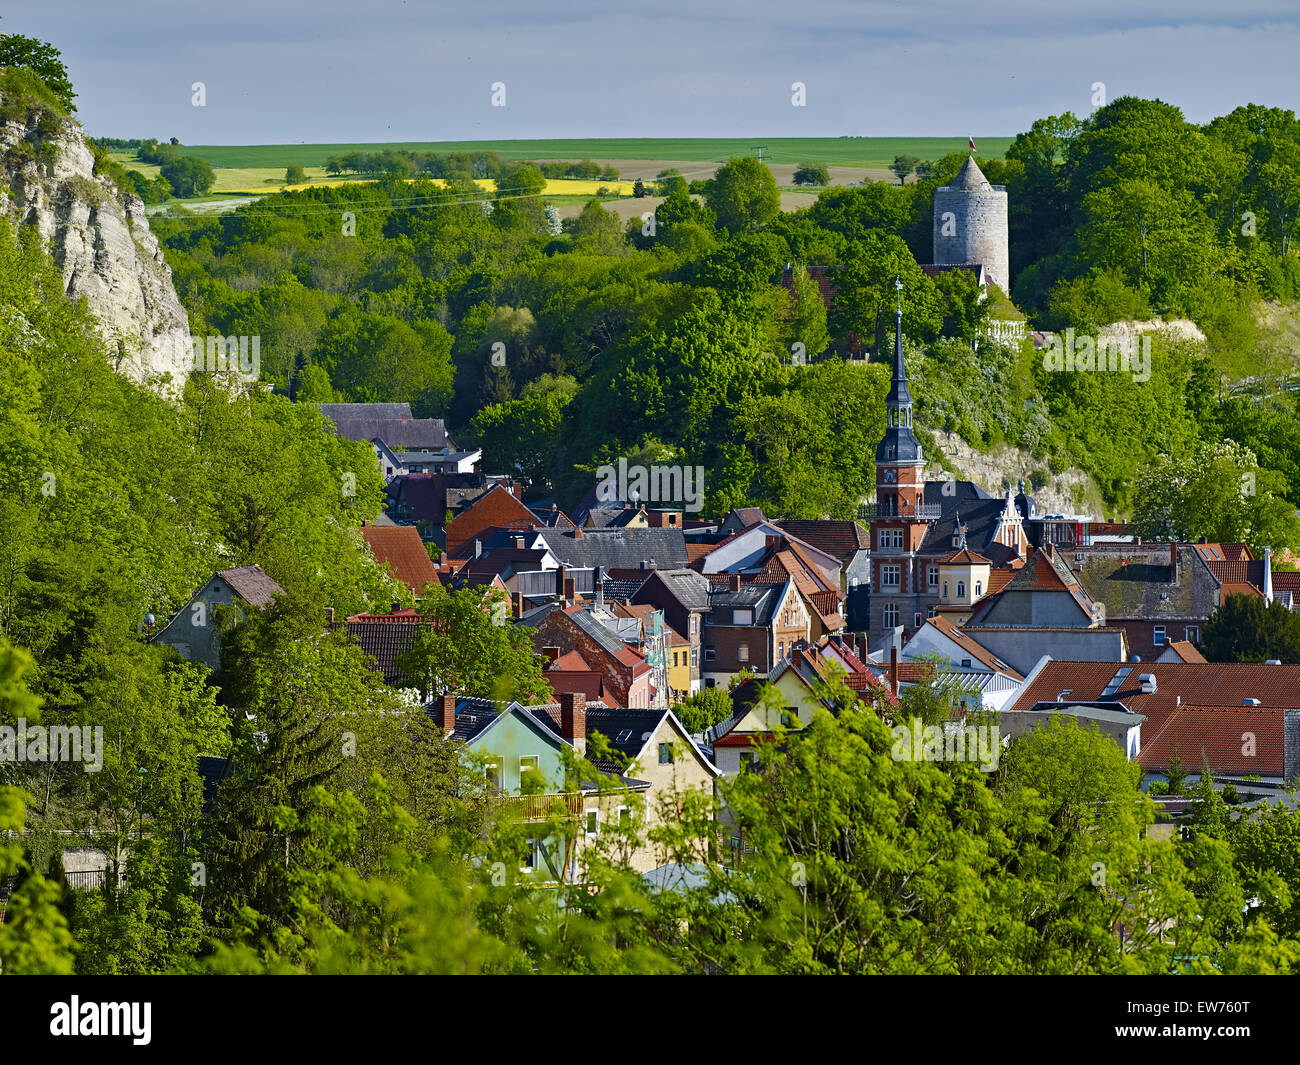 View over Camburg, Thuringia, Germany - Stock Image